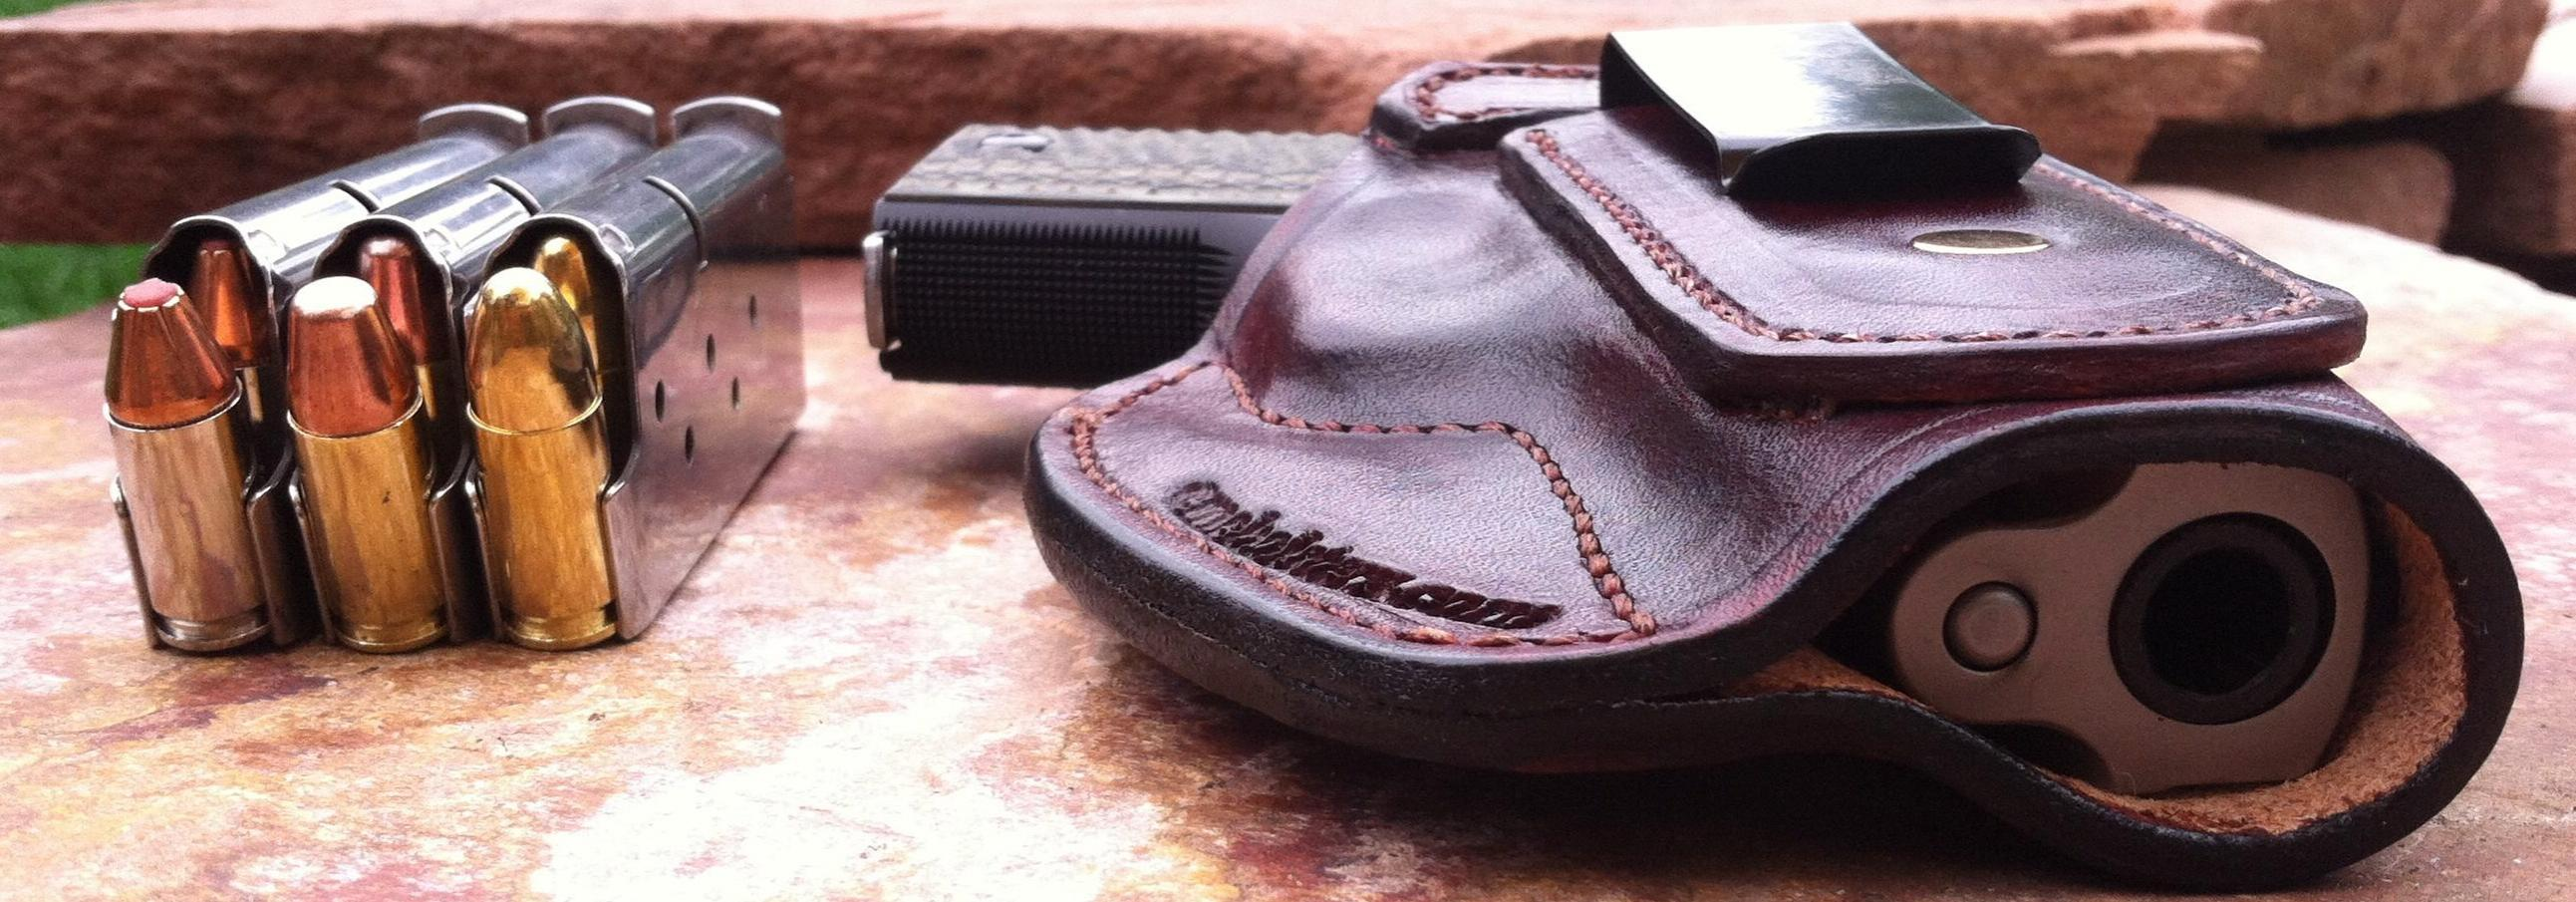 CME Holster for my 938-3tone1.jpg